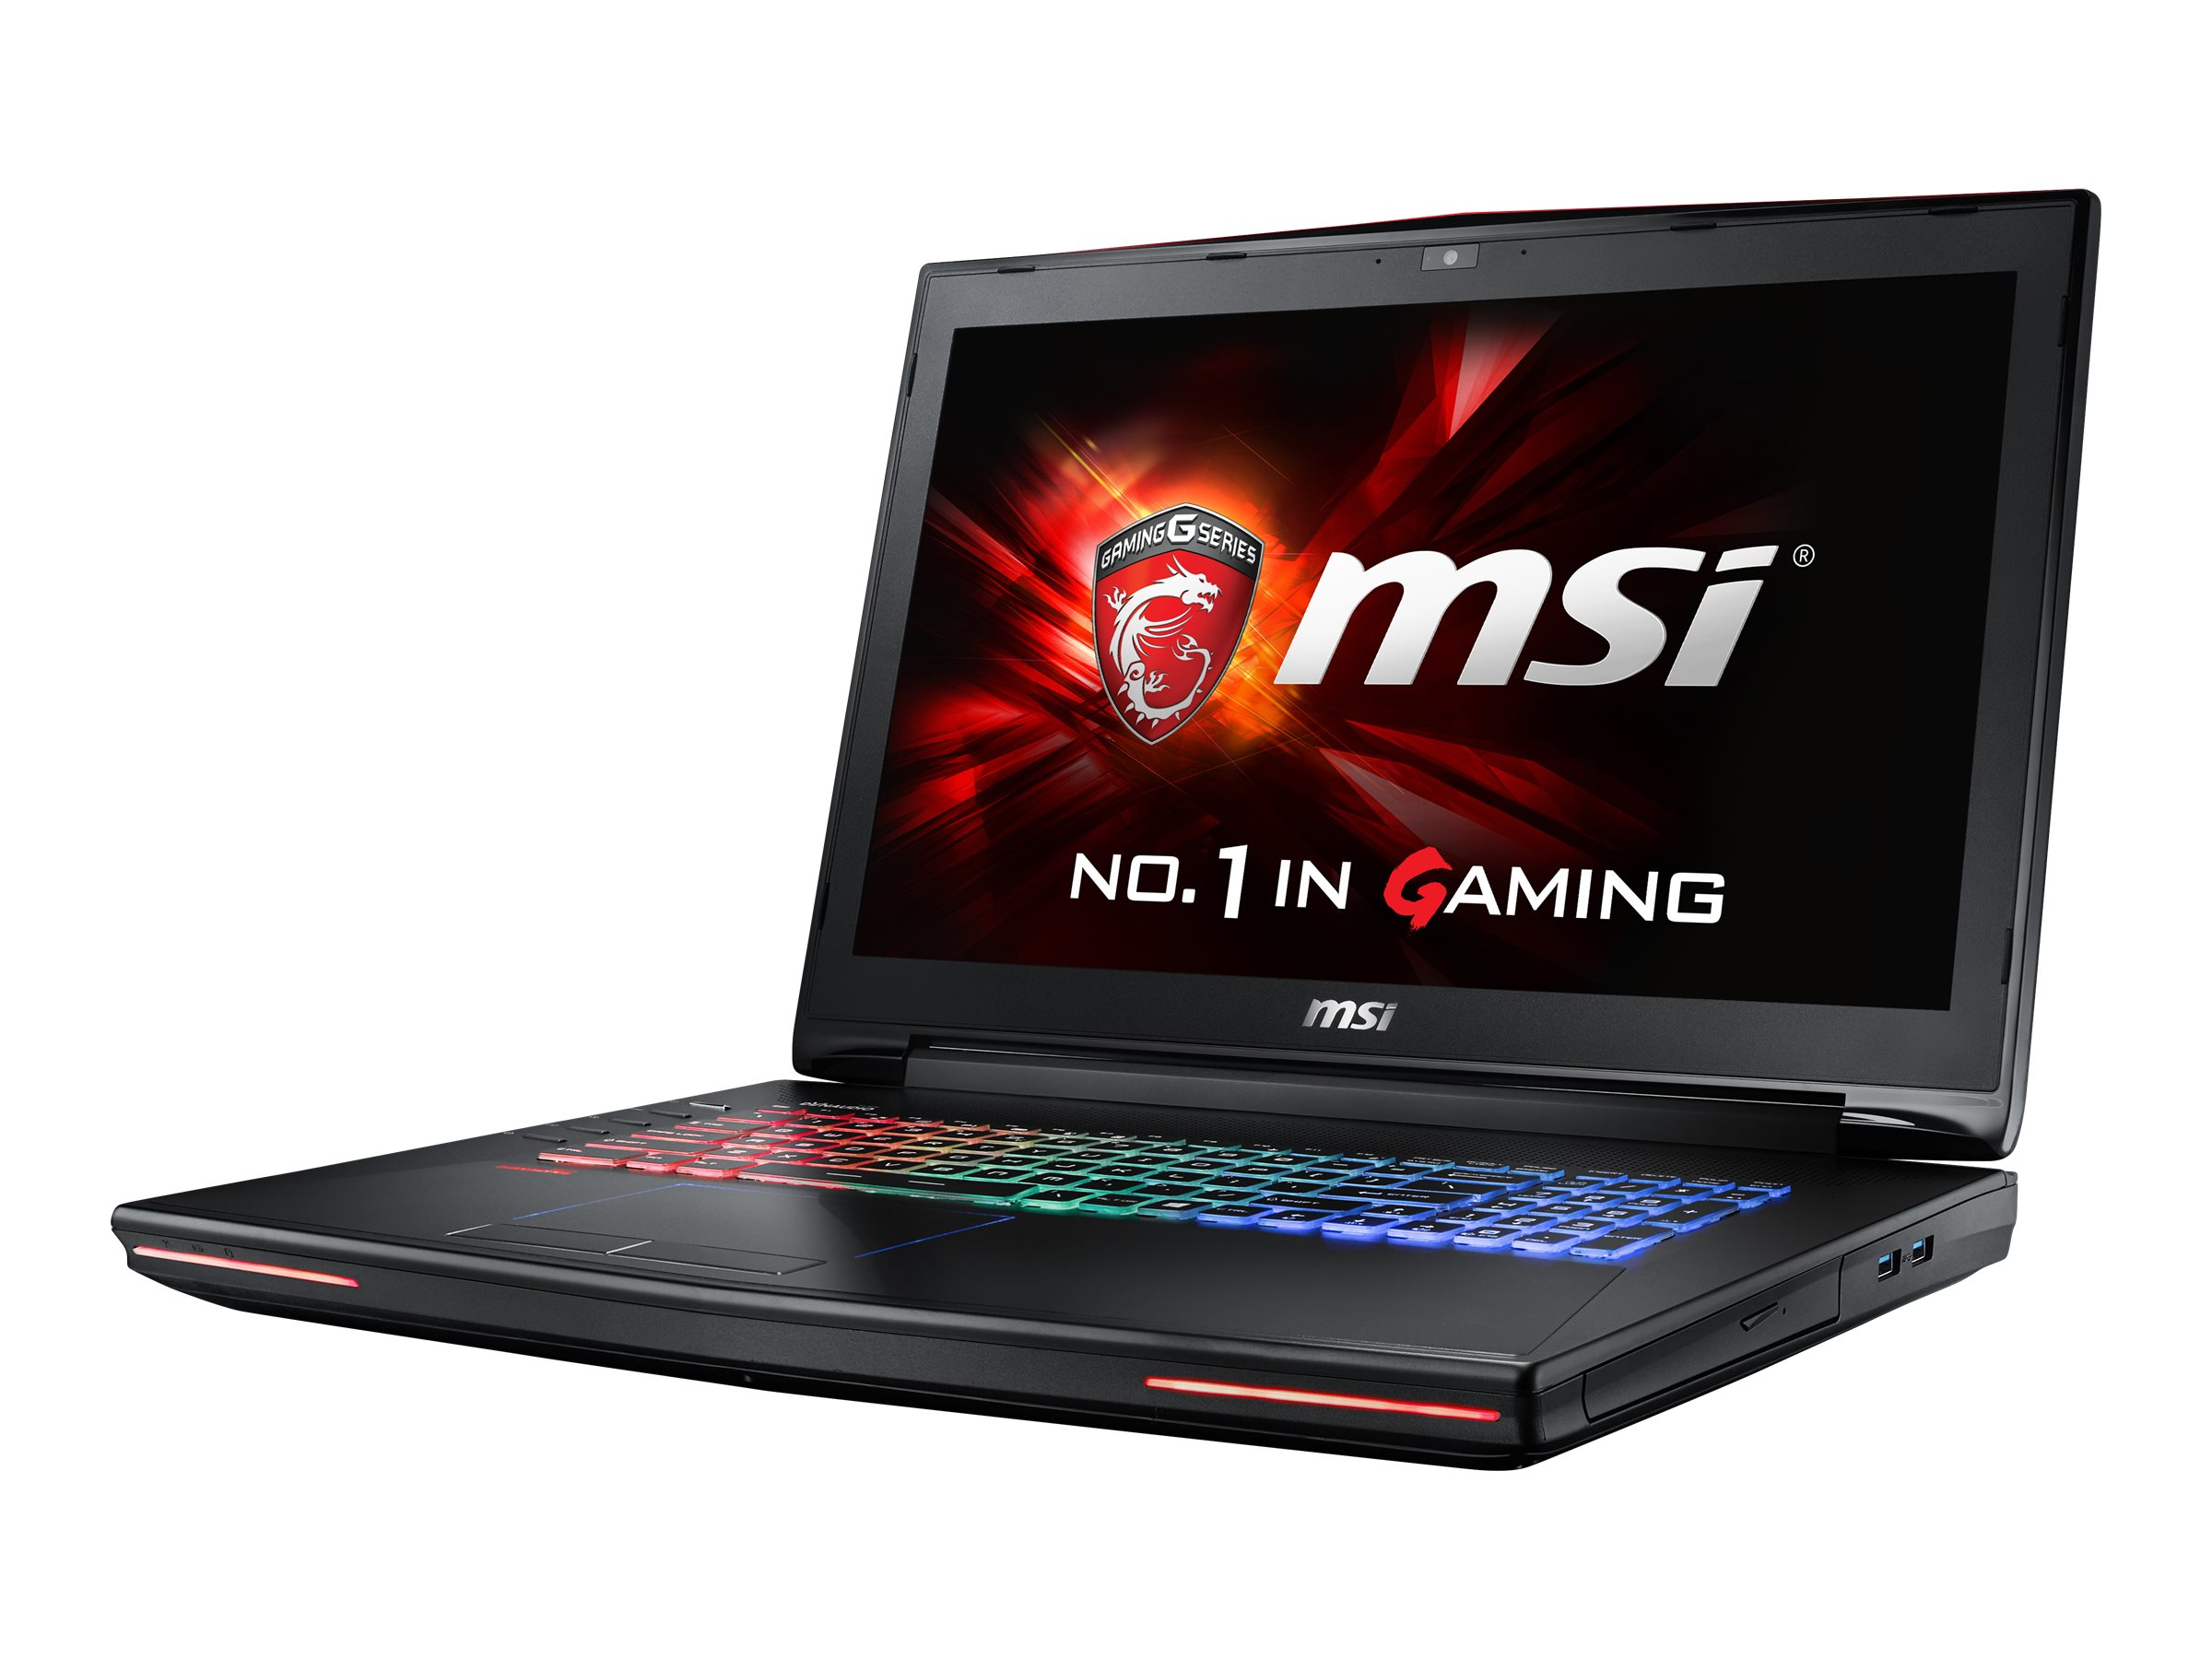 MSI GT72VR Dominator-032 Notebook PC